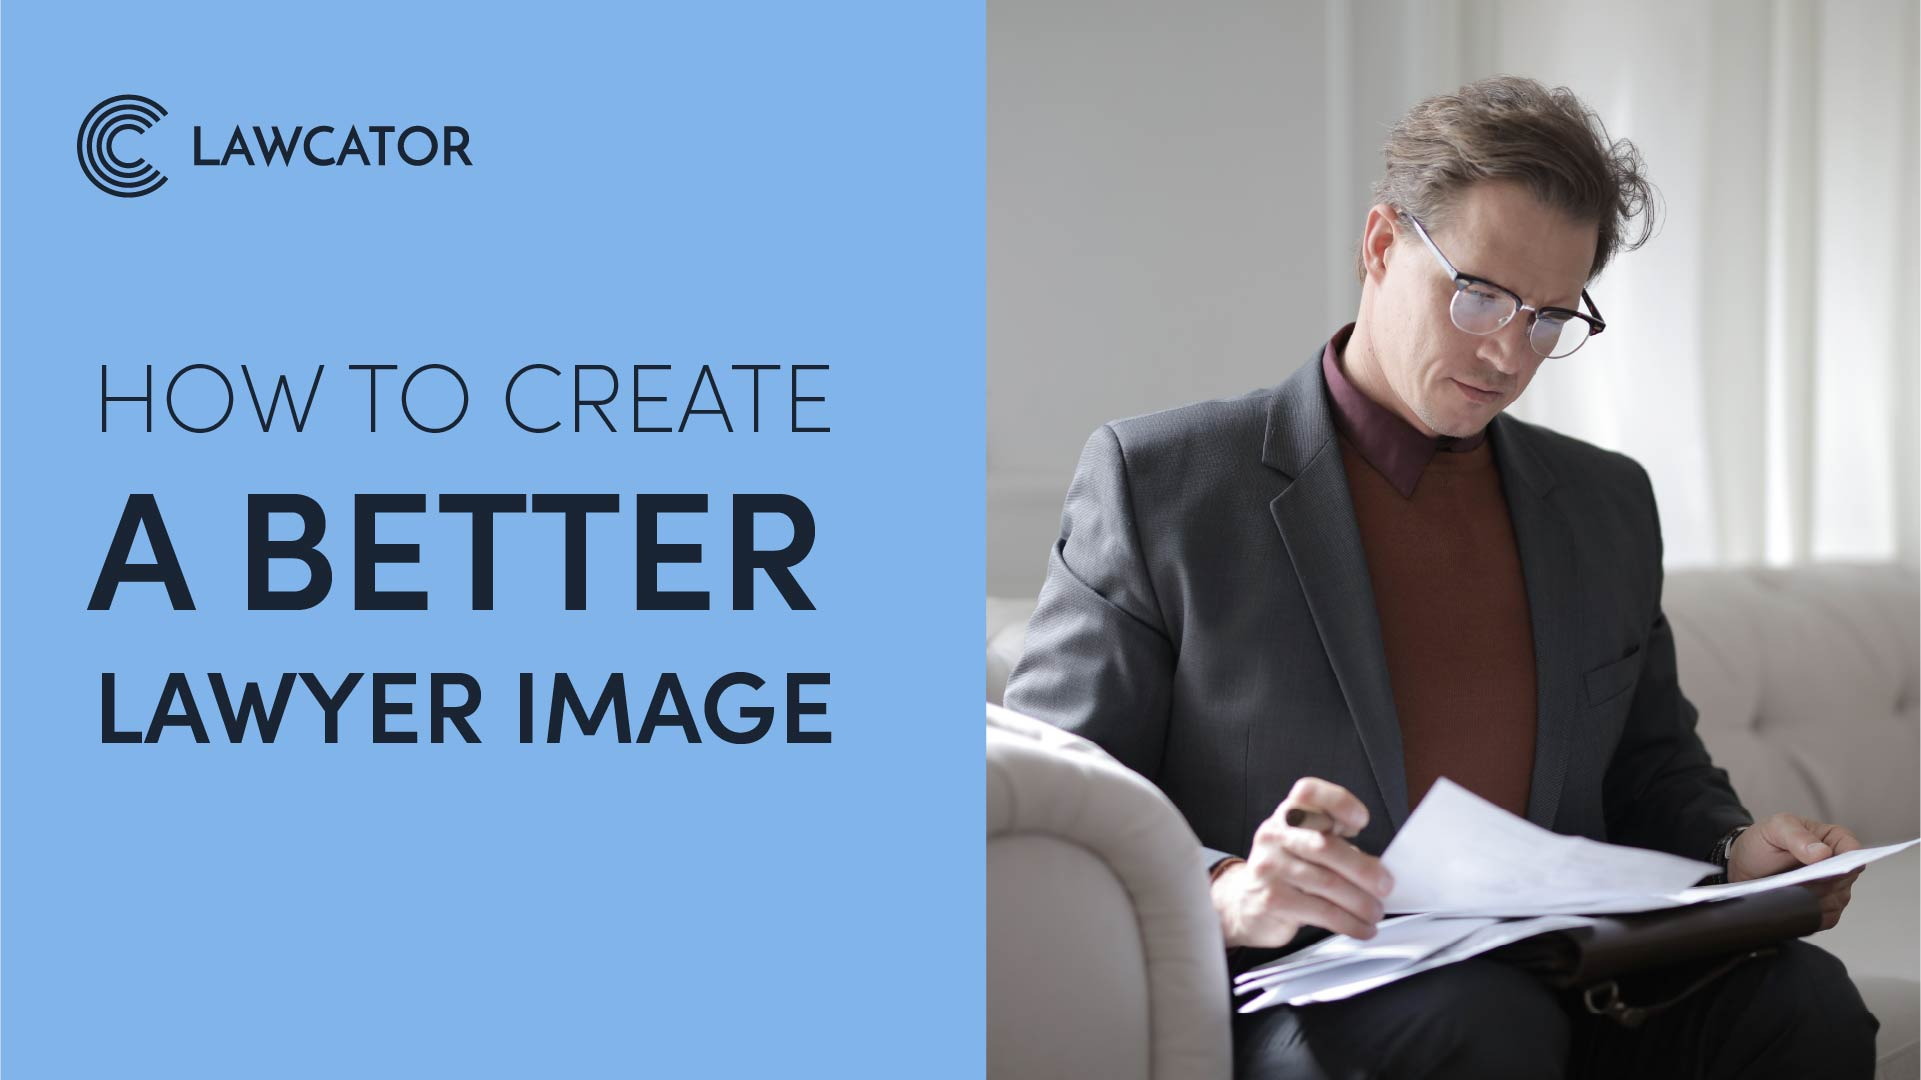 How To Create a Better Lawyer Image